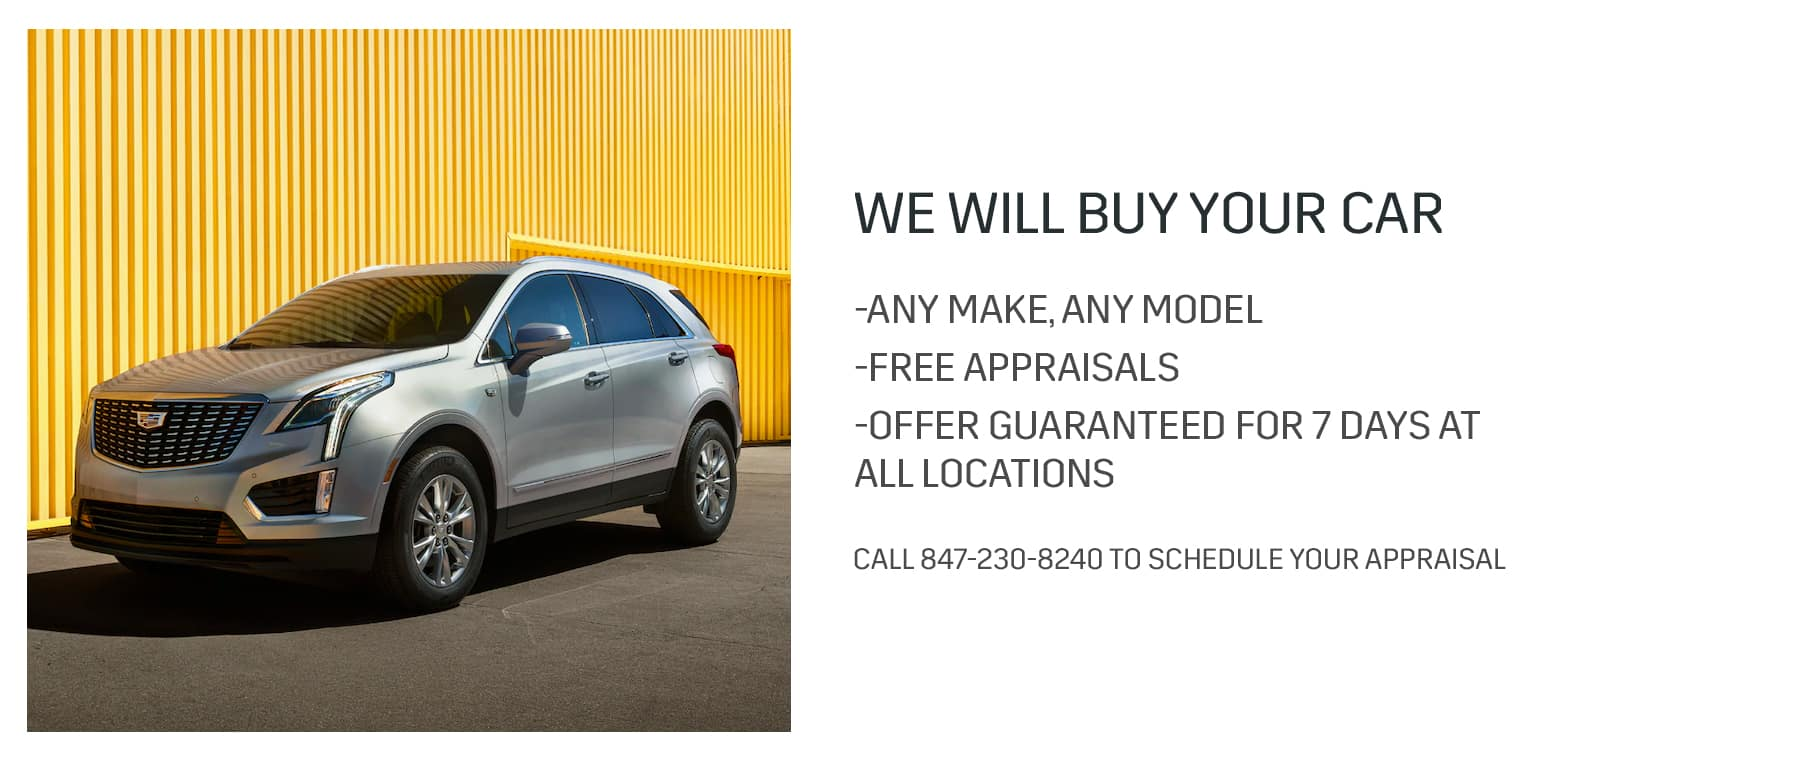 We will buy your car at Patrick Cadillac in Schaumburg, IL. Any make, any model. Free appraisals. Offer guaranteed for 7 days at all locations. Call us today or submit an inquiry.